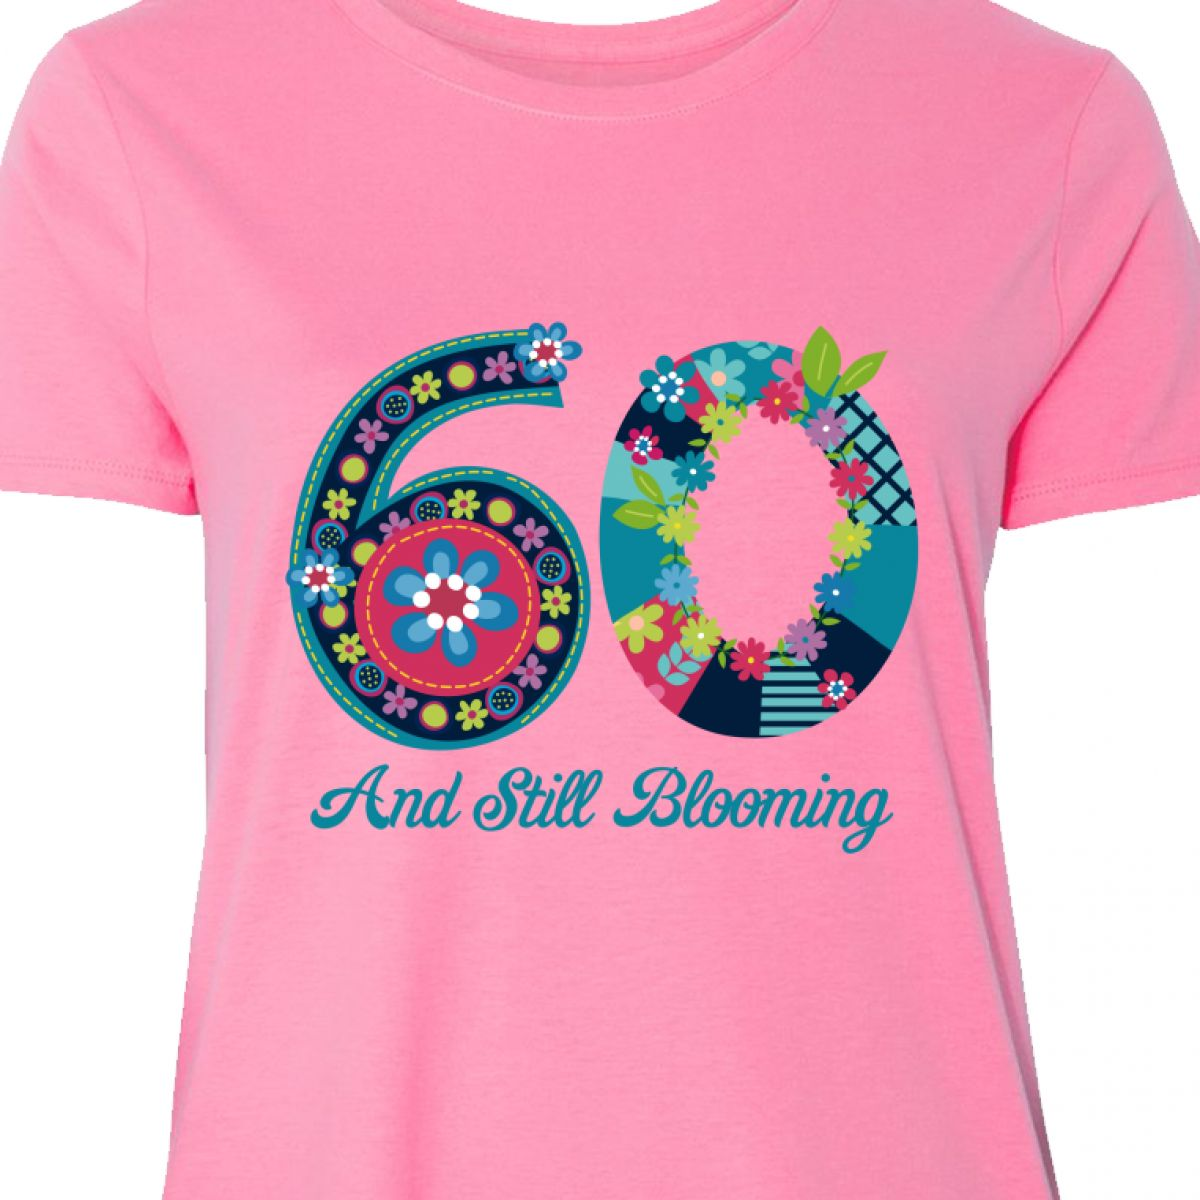 7dac723646d Details about Inktastic Blooming 60th Birthday Women s Plus Size T-Shirt  Flower Whimsical Just